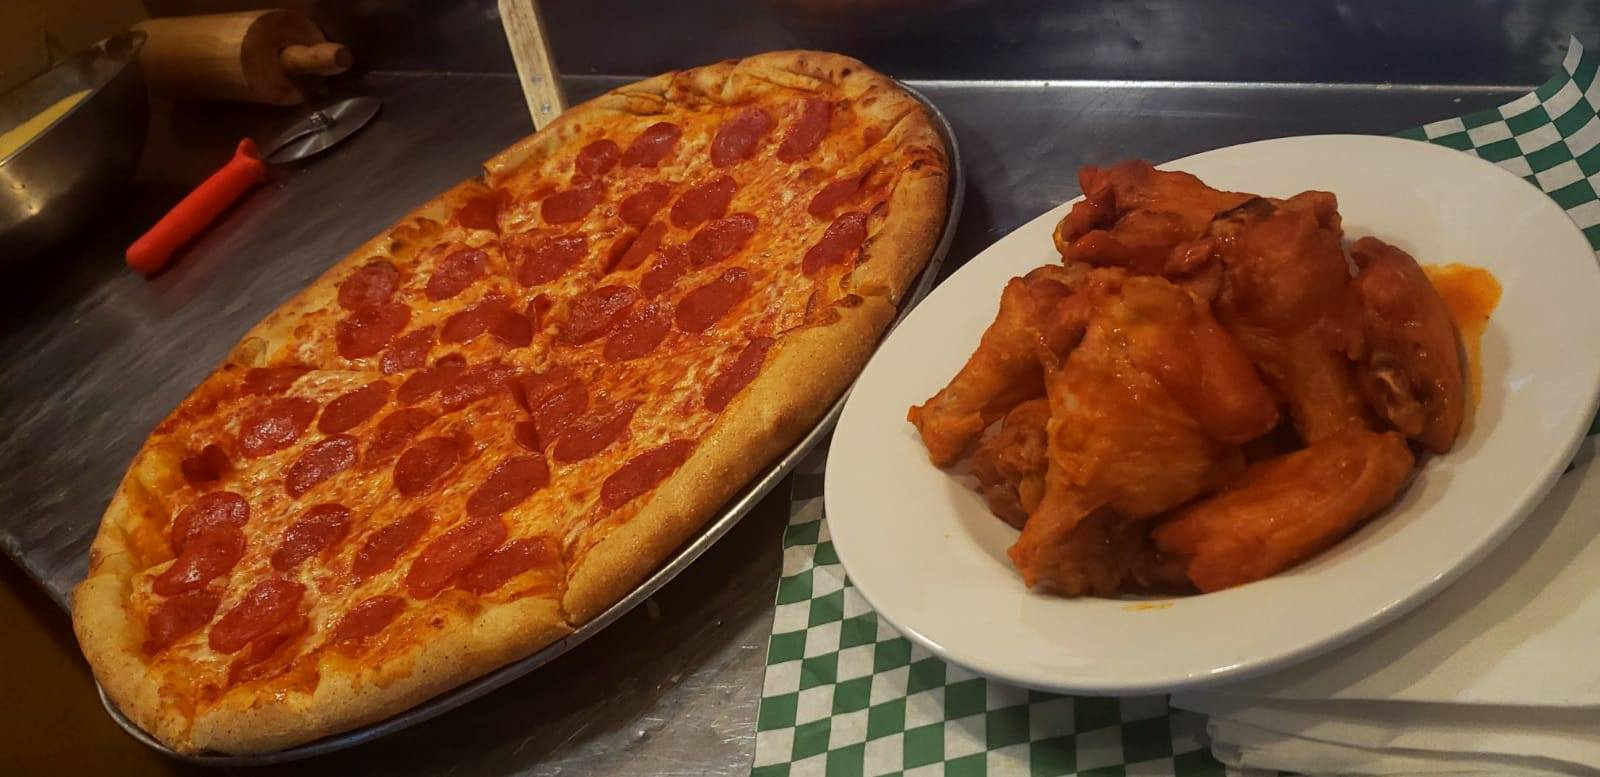 Pepperoni pizza and a bowl of buffalo chicken wings